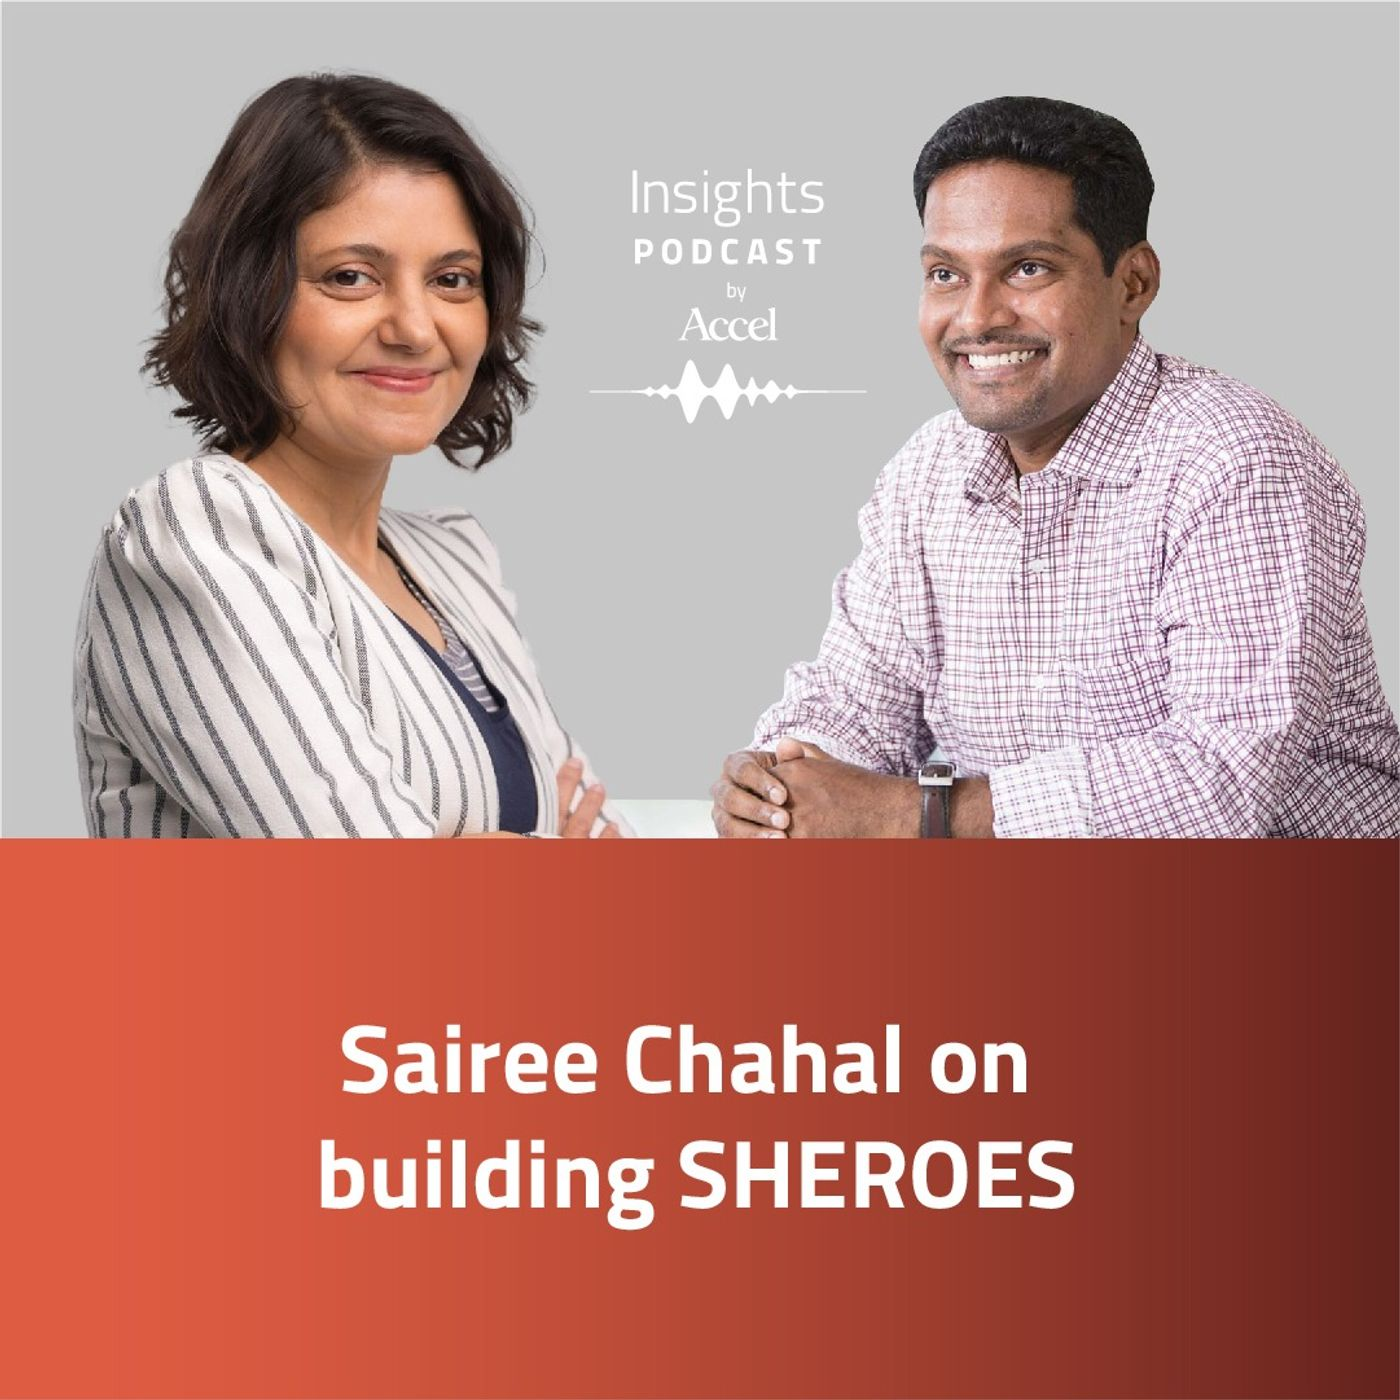 INSIGHTS #56 - Sairee Chahal on building SHEROES